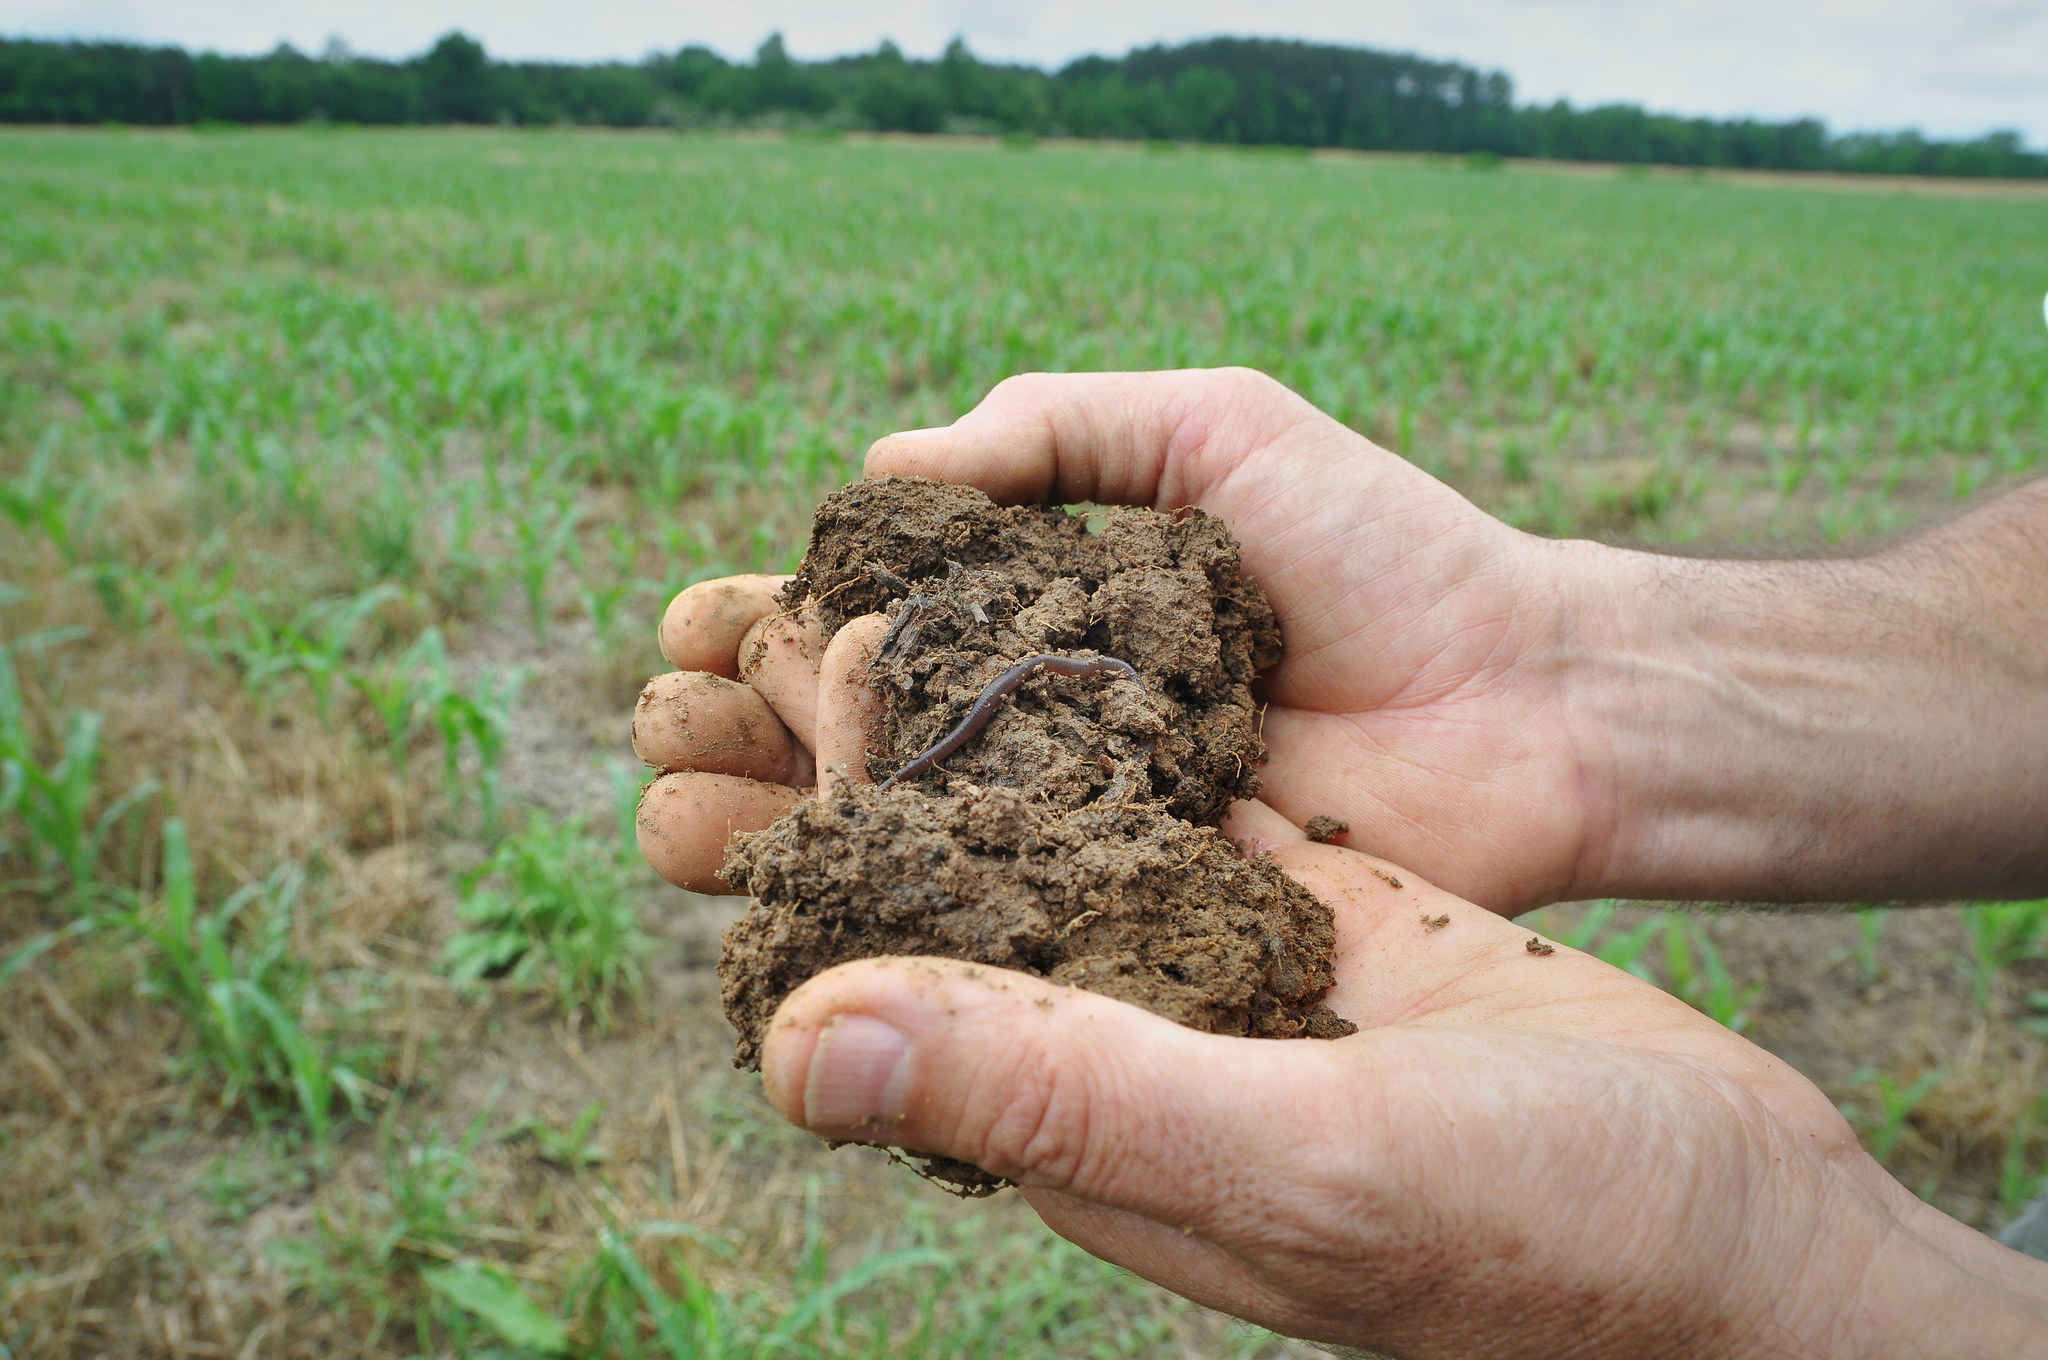 NACD Soil Health Research - Research newly released by NACD and Datu Research finds using cover crops and/or no-till can result in an economic return of over $100 per acre.